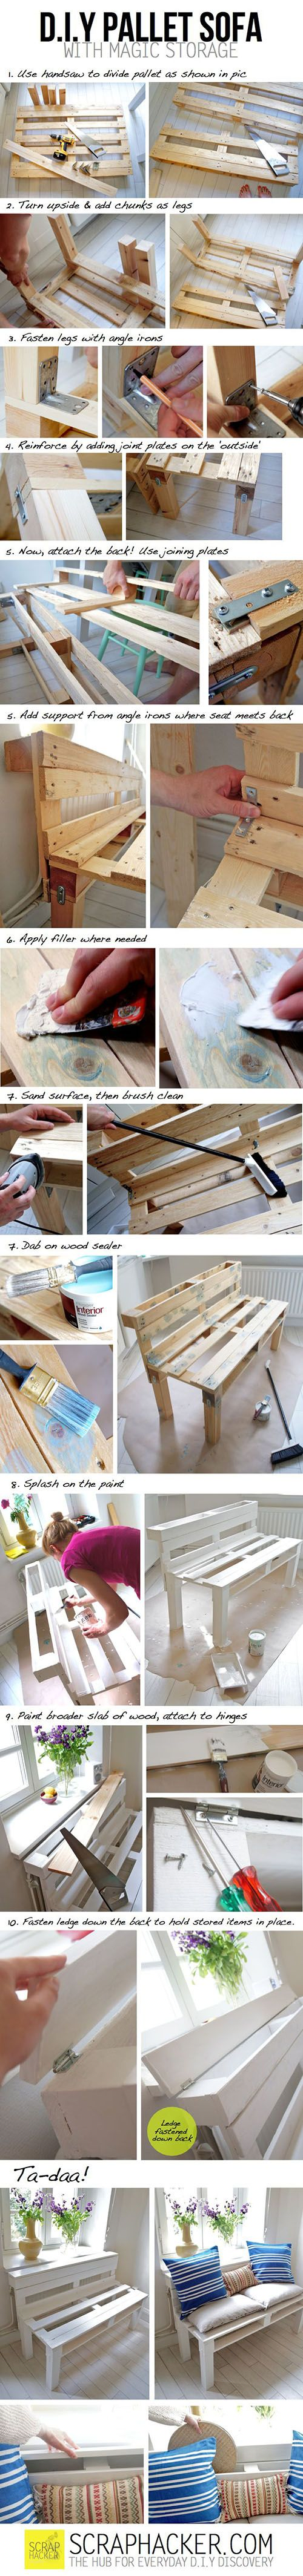 Diy Pallet Sofa | DIY  Crafts